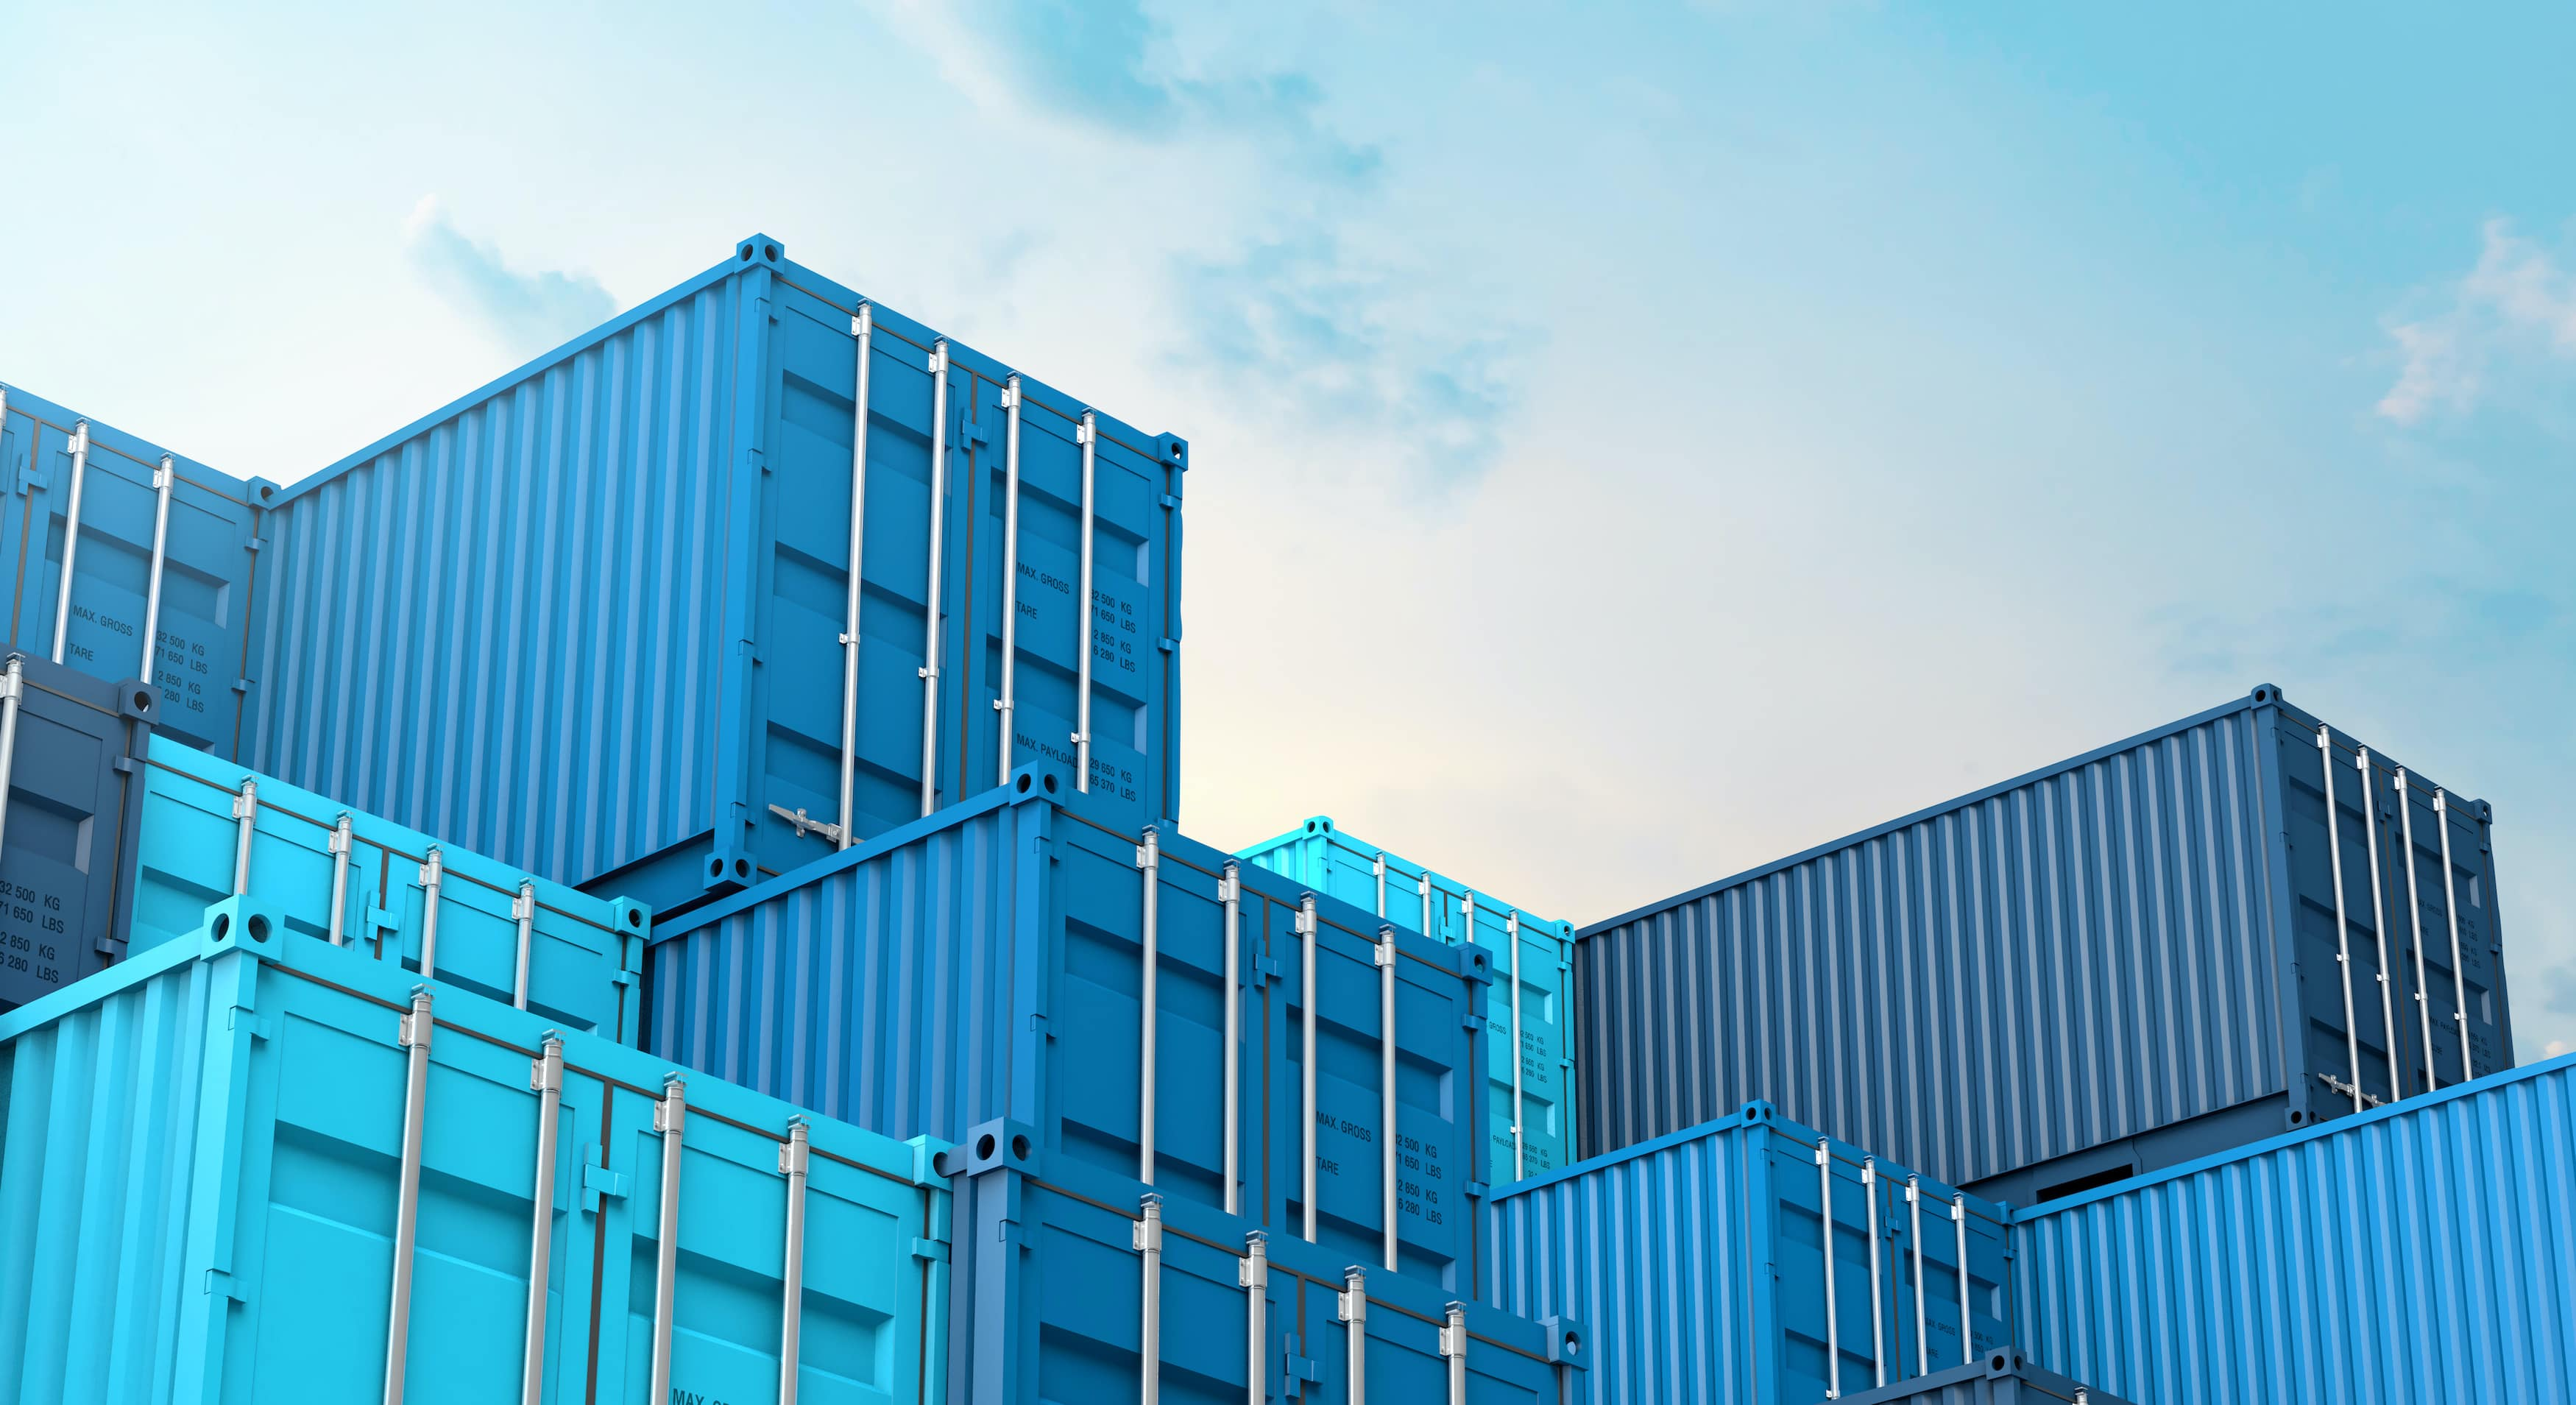 stack of blue shipping containers at dock